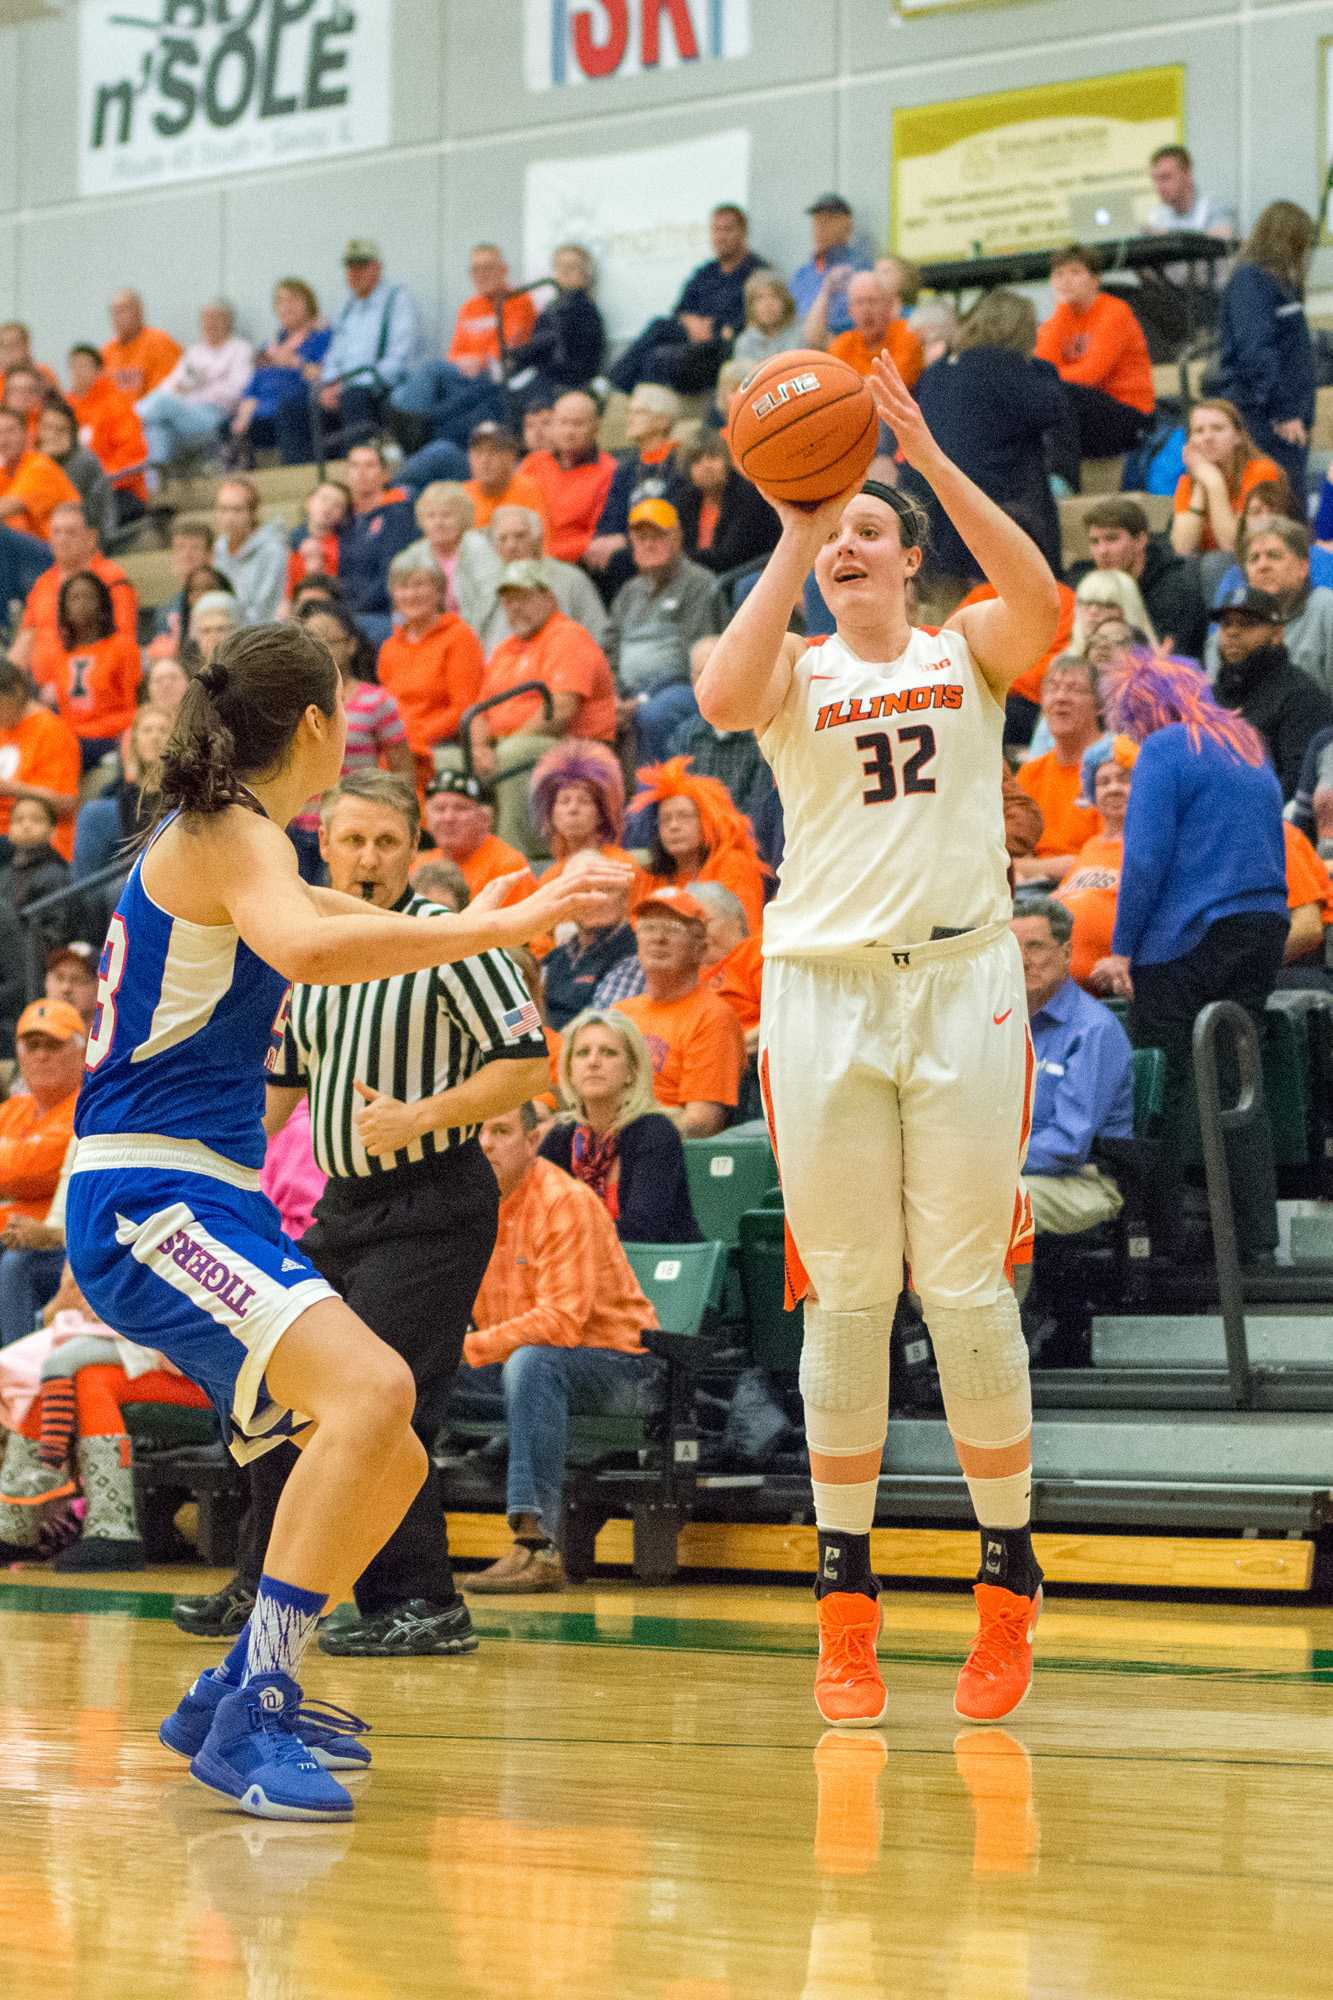 Center Chatrice White takes a three point shot during the game against Tennessee State at Parkland College on Tuesday, Nov. 24. Illinois won 98-43.